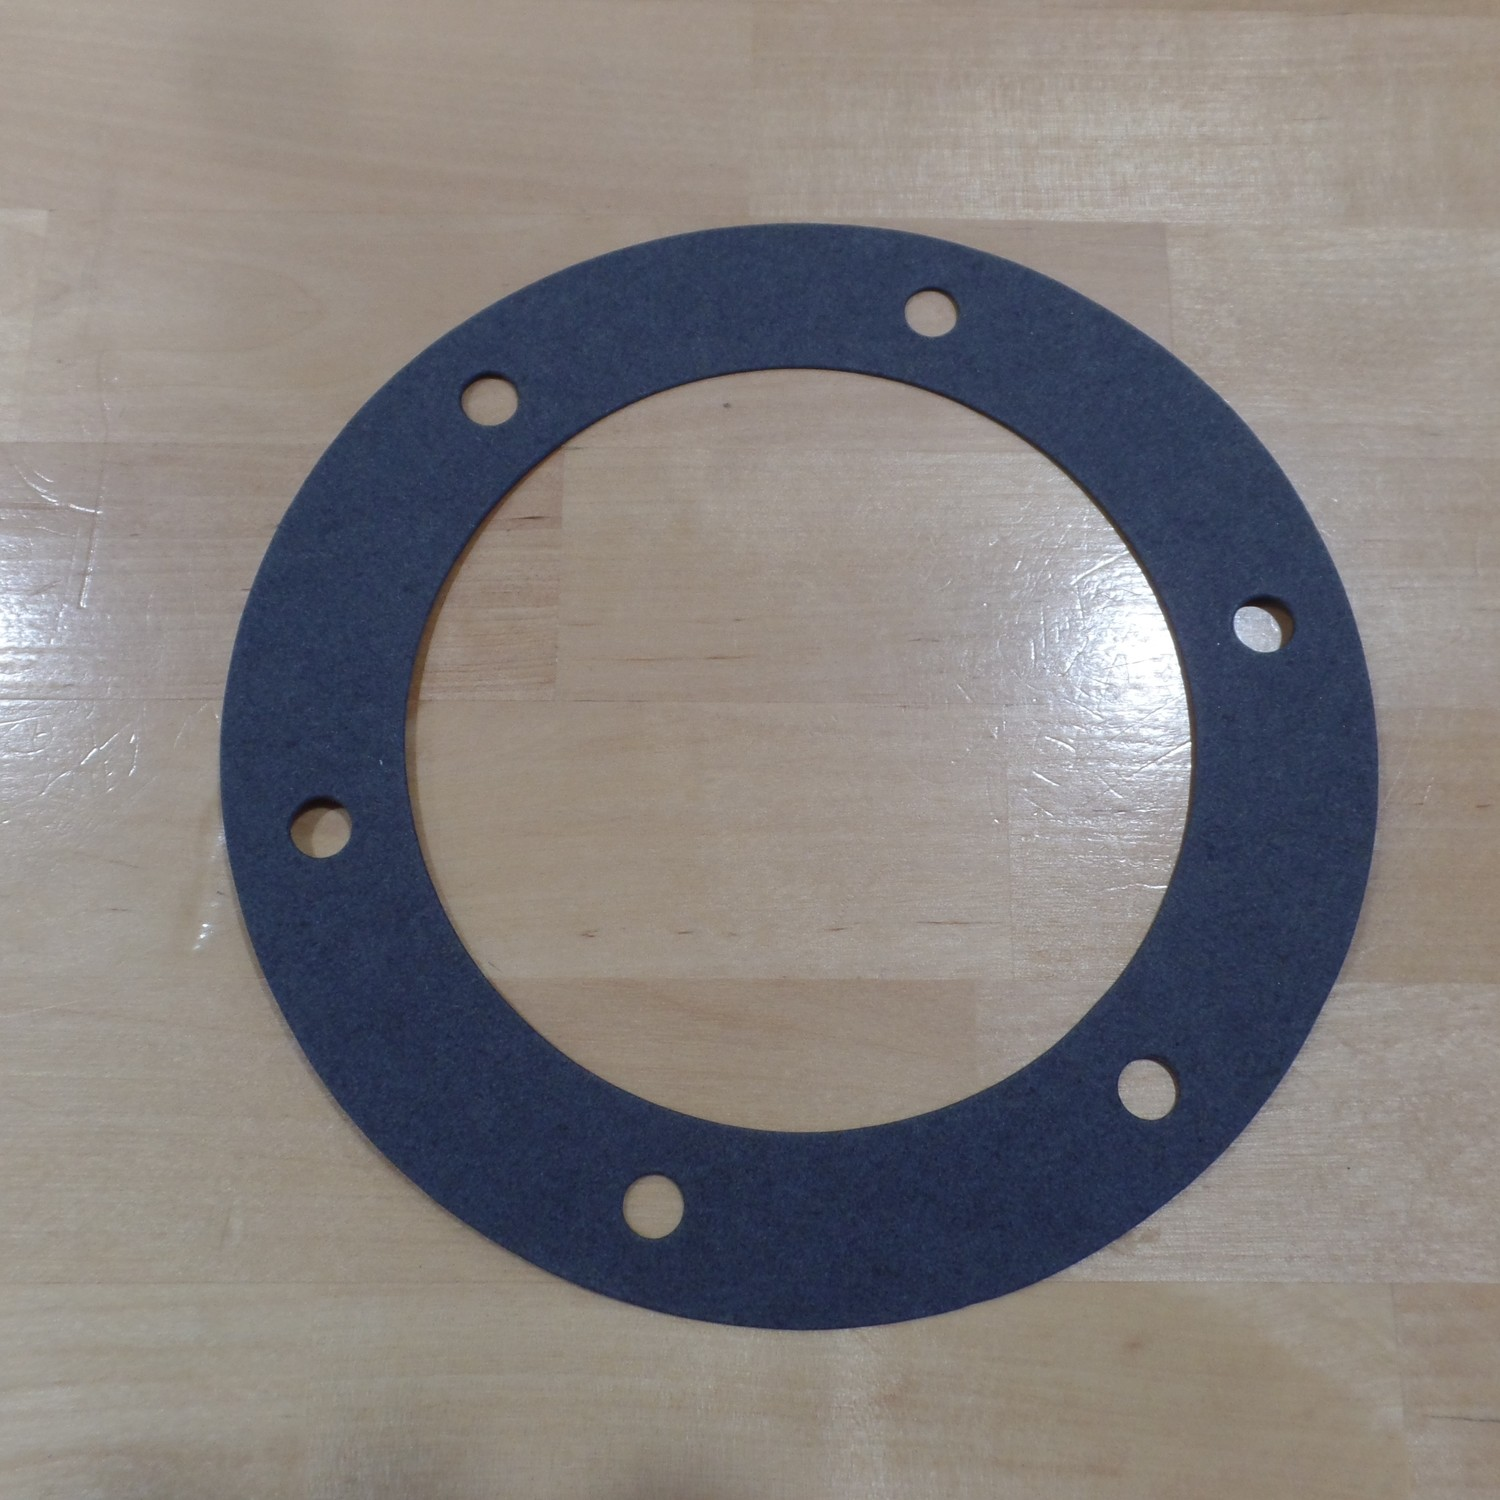 Axle Differential Pinion Flange Cover Gasket m54 (M39), M809 and M939 Series 5 Ton Military Vehicles 5 ton